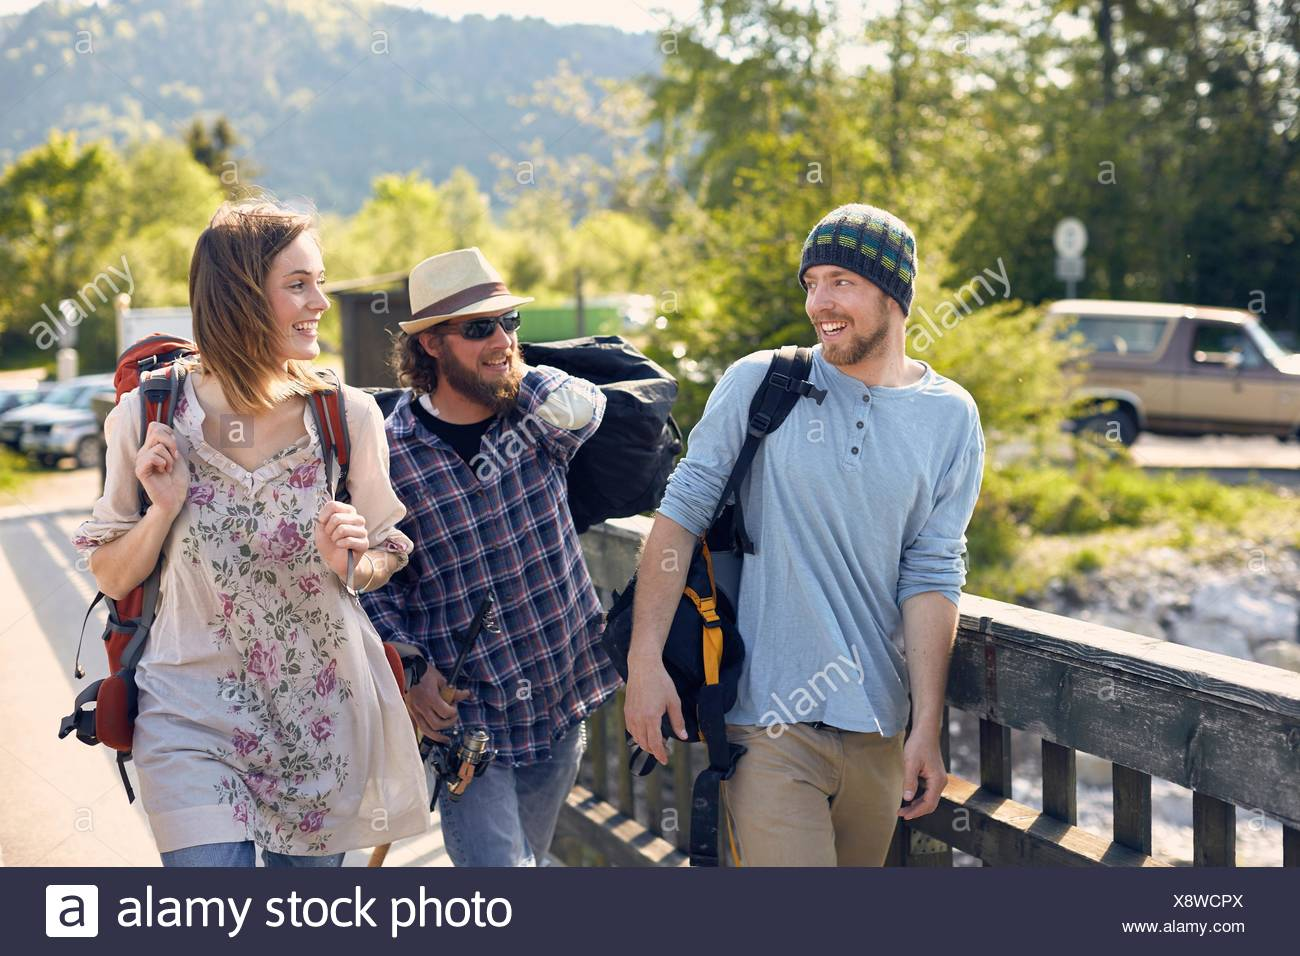 Three people walking together carrying backpacks, smiling - Stock Image